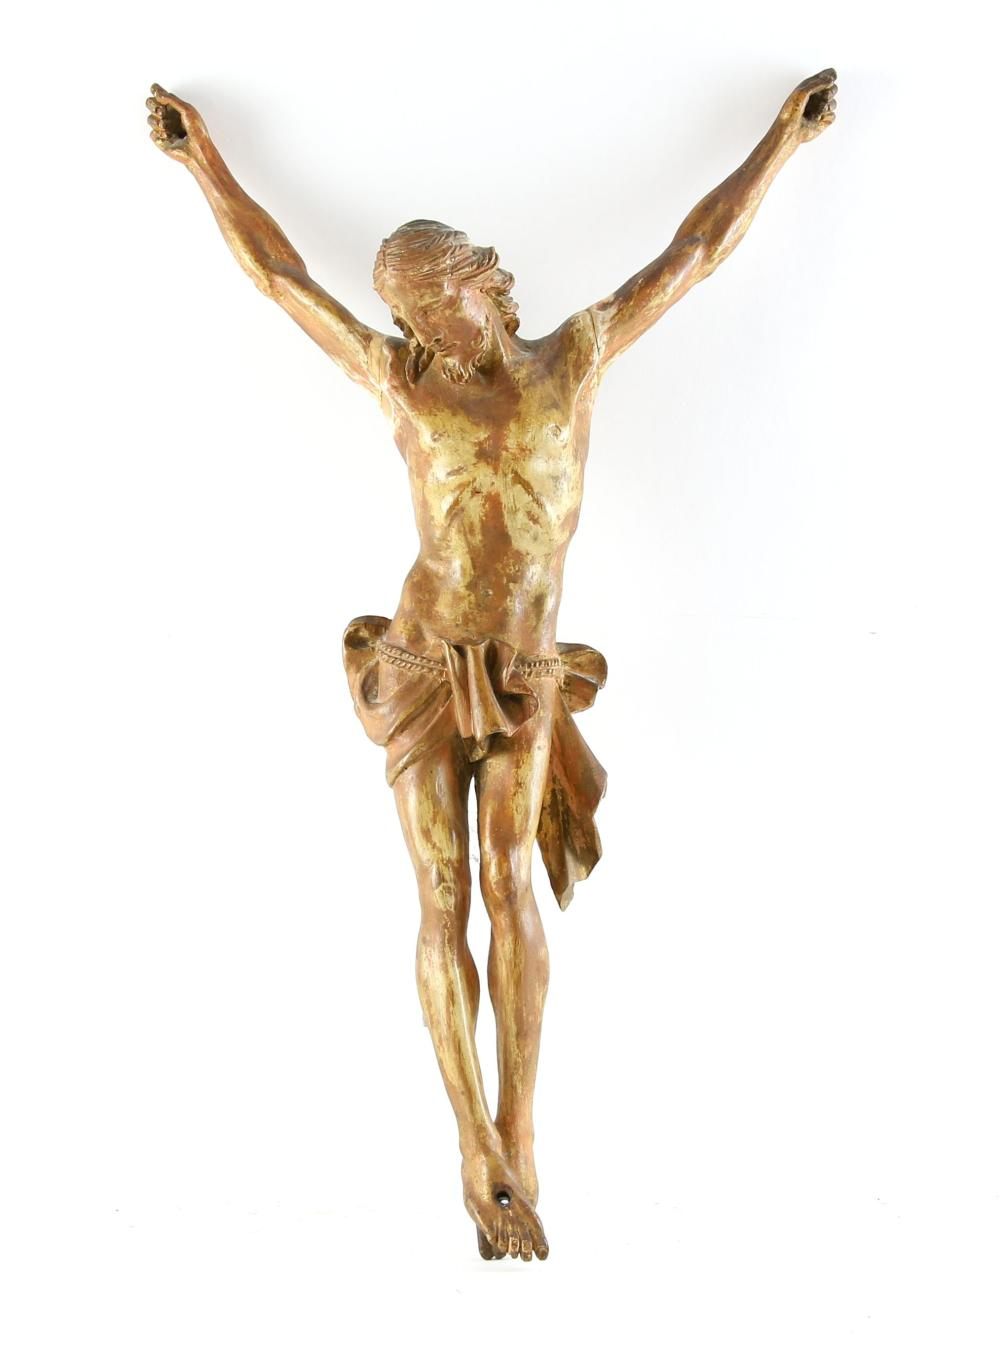 Carved wood figure of Christ crucified, about 61 c